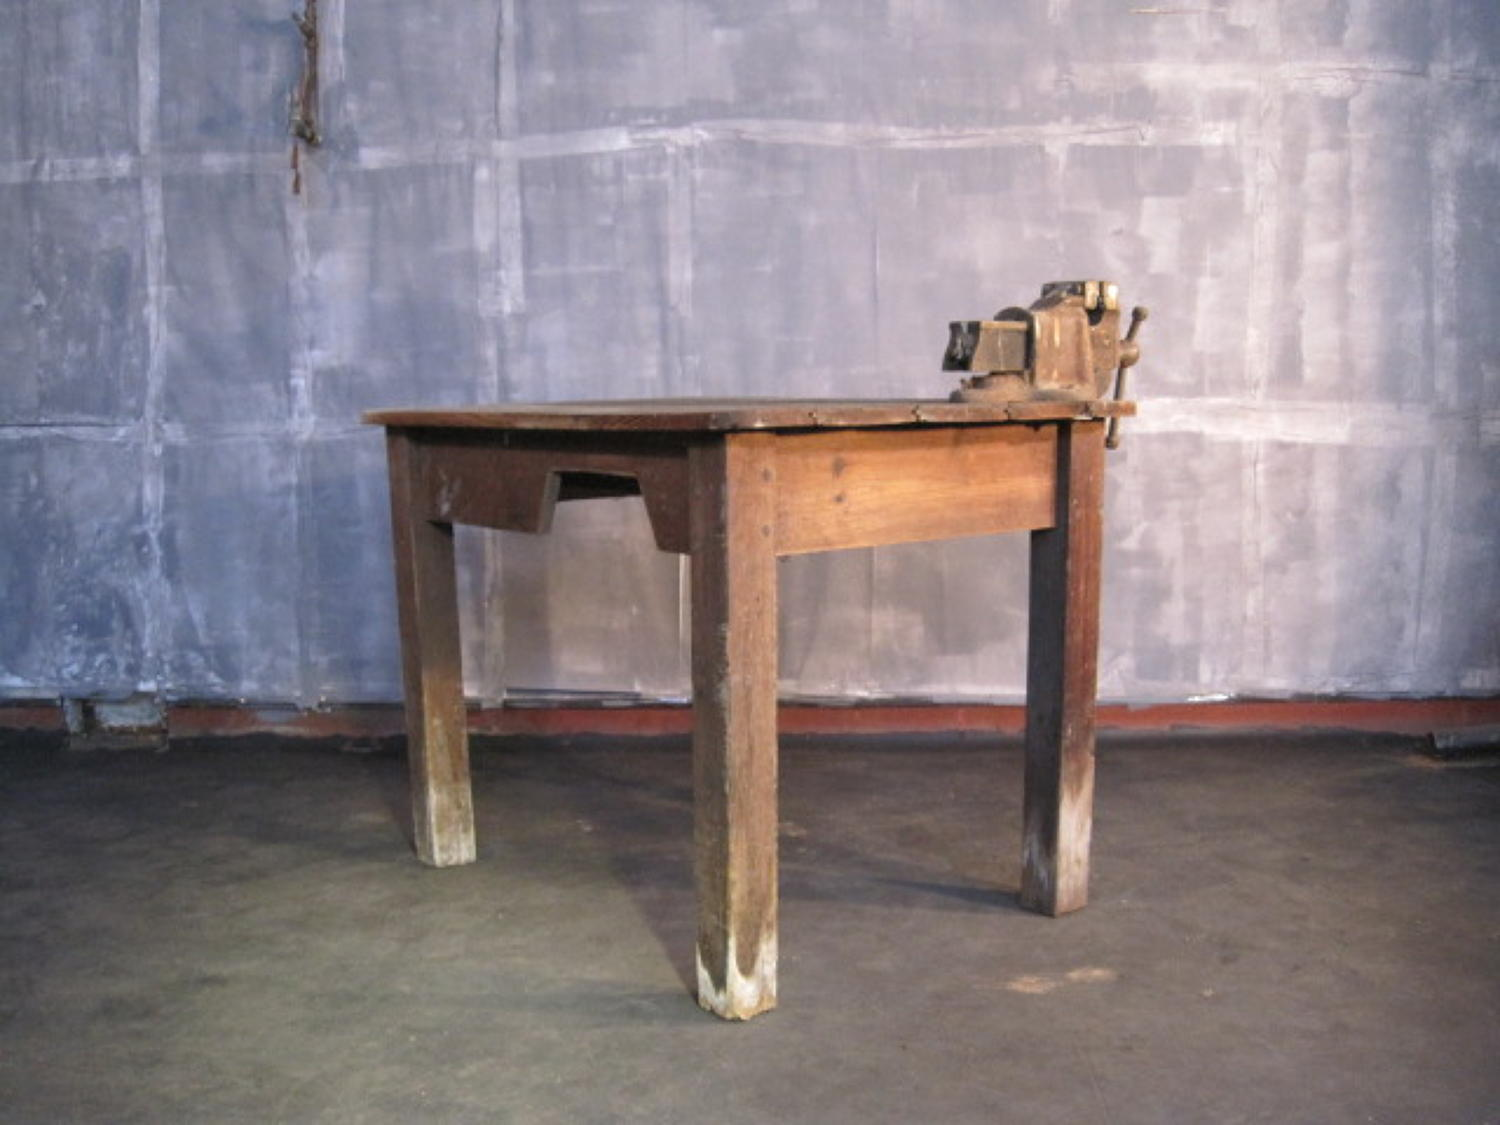 Antique pine work table or bench